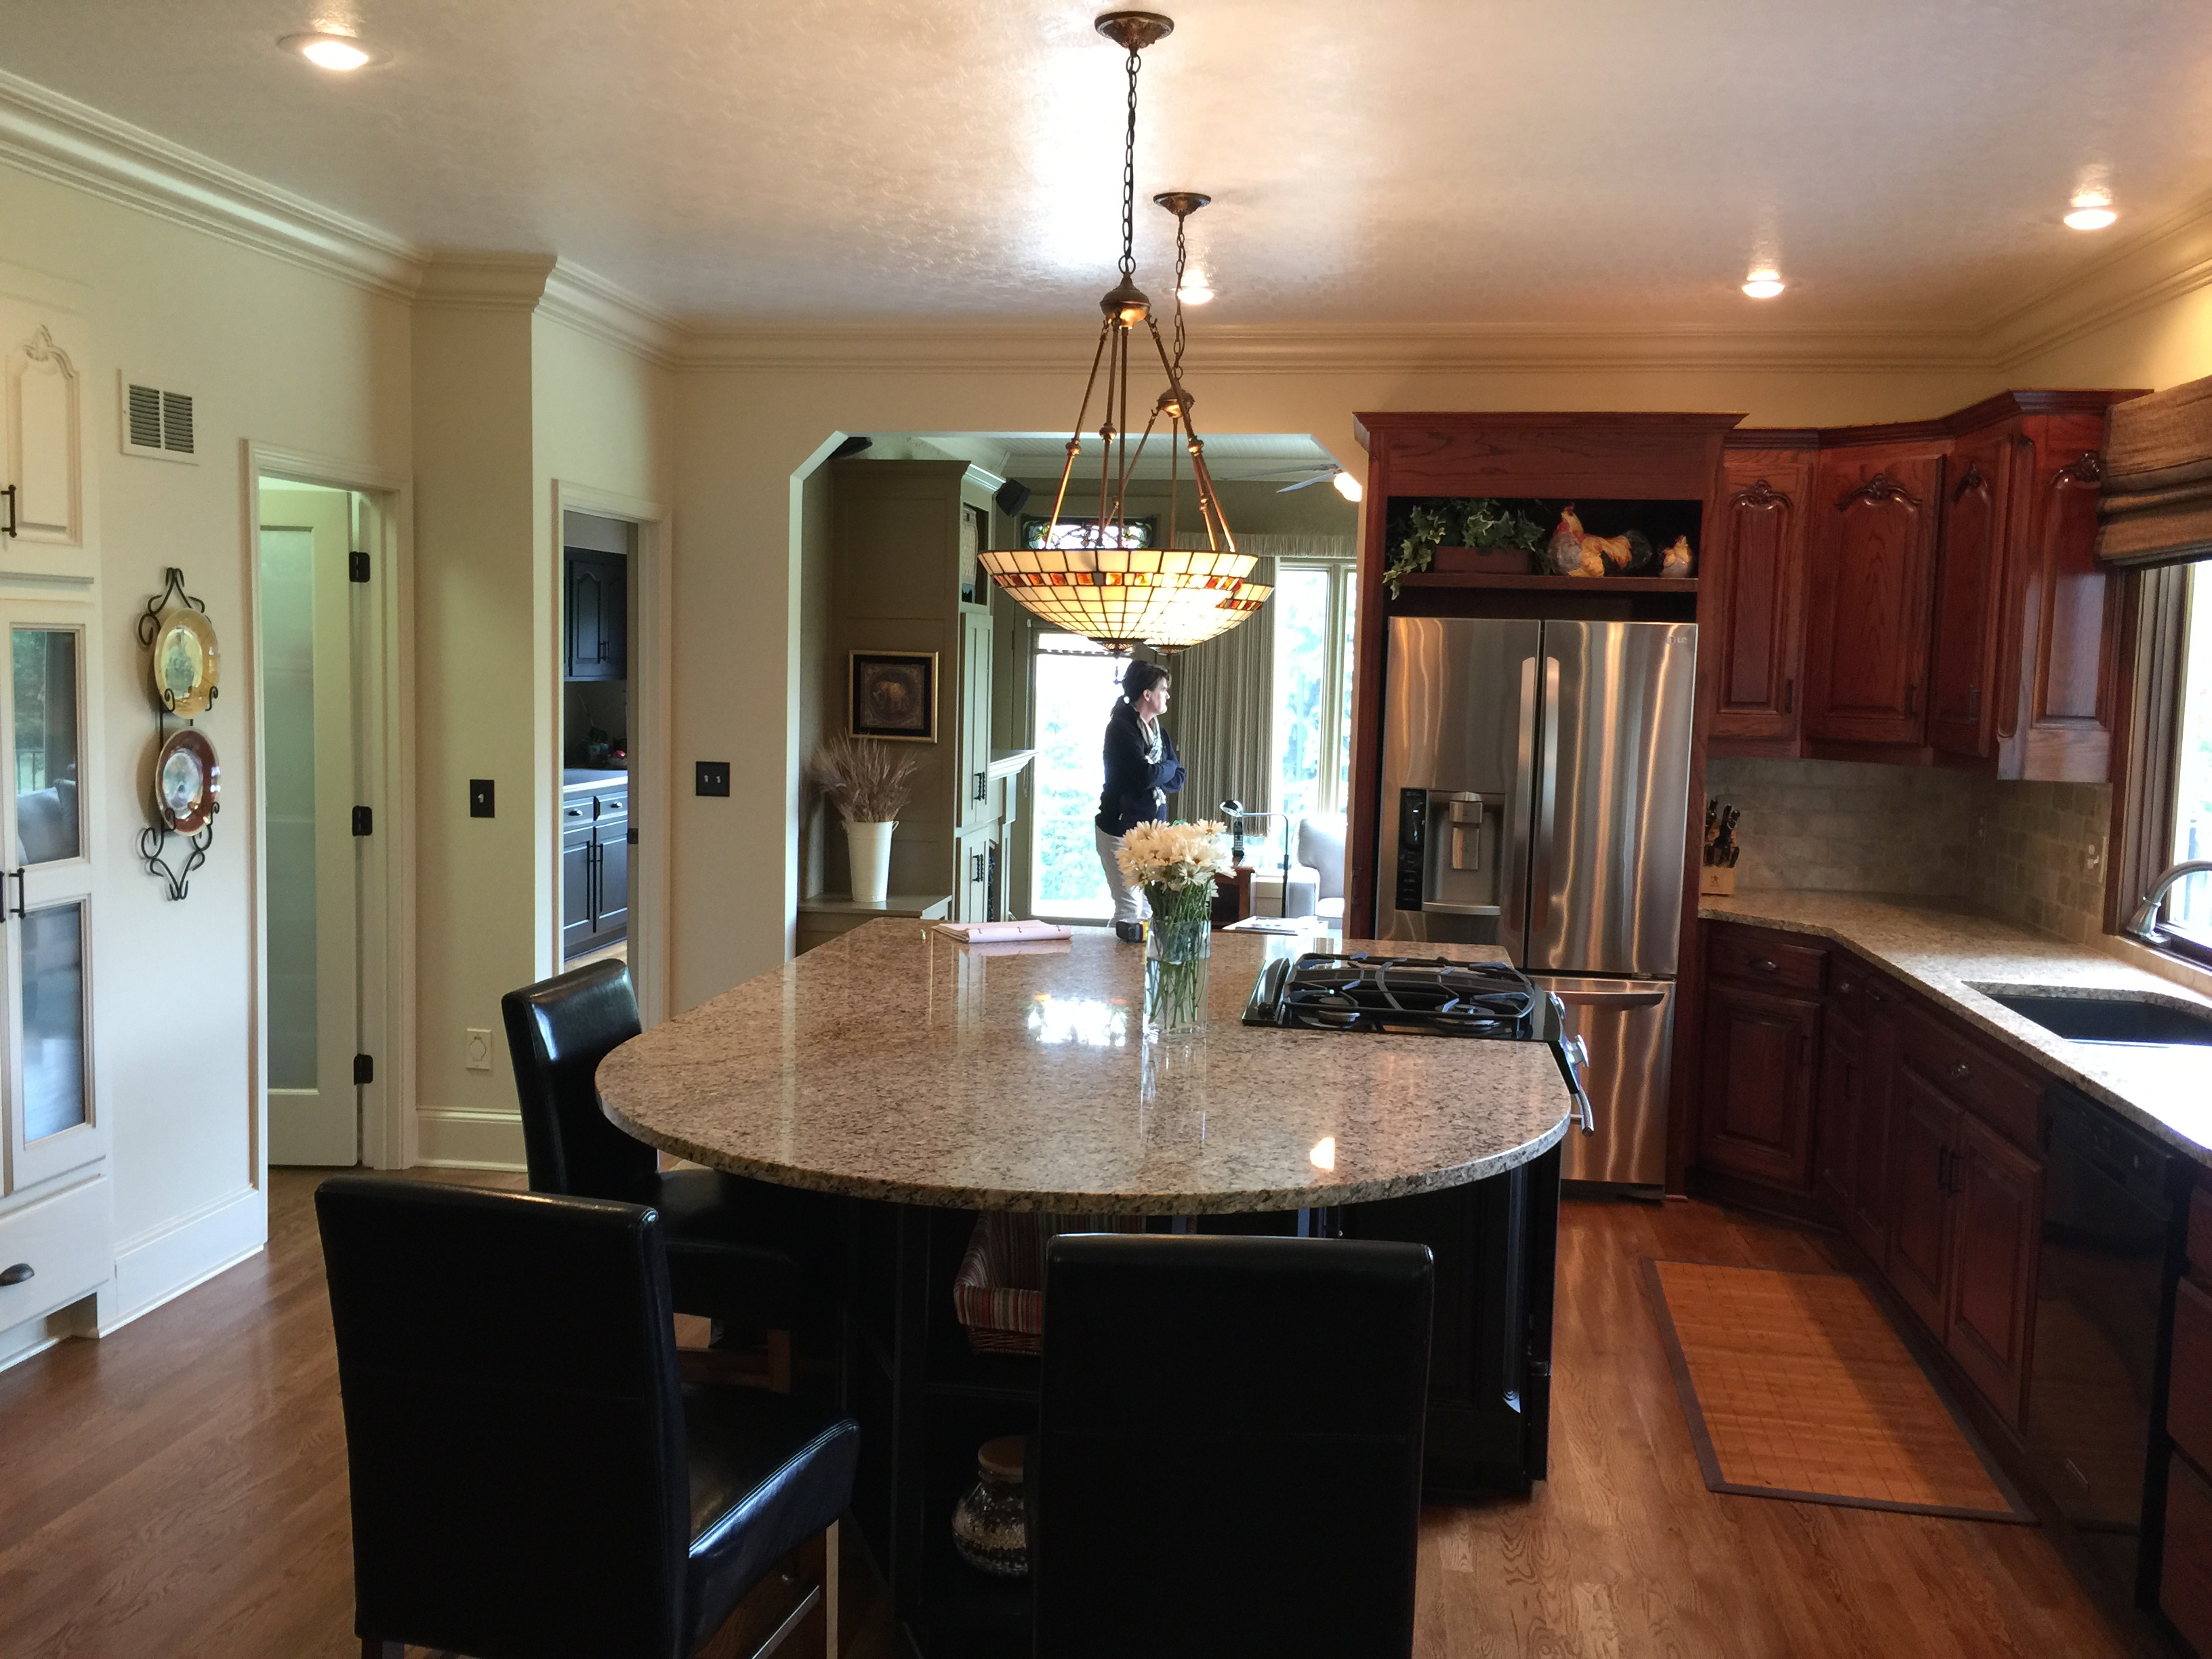 hallbrook kitchen before scovell wolfe remodel